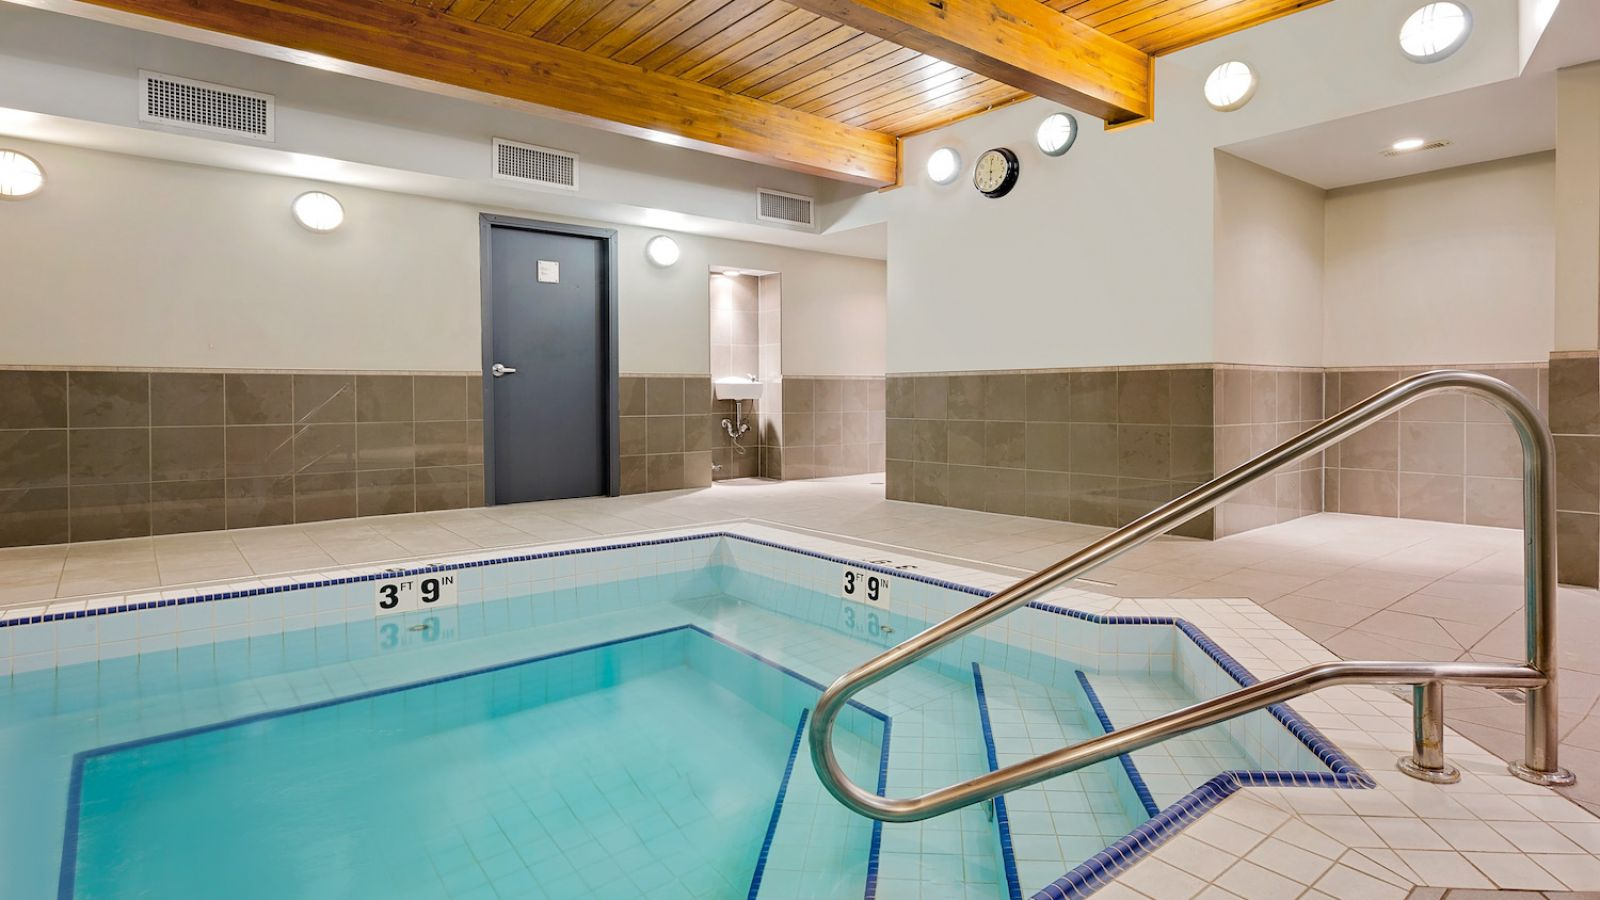 Ramada Hotel Kamloops - Hot Tub